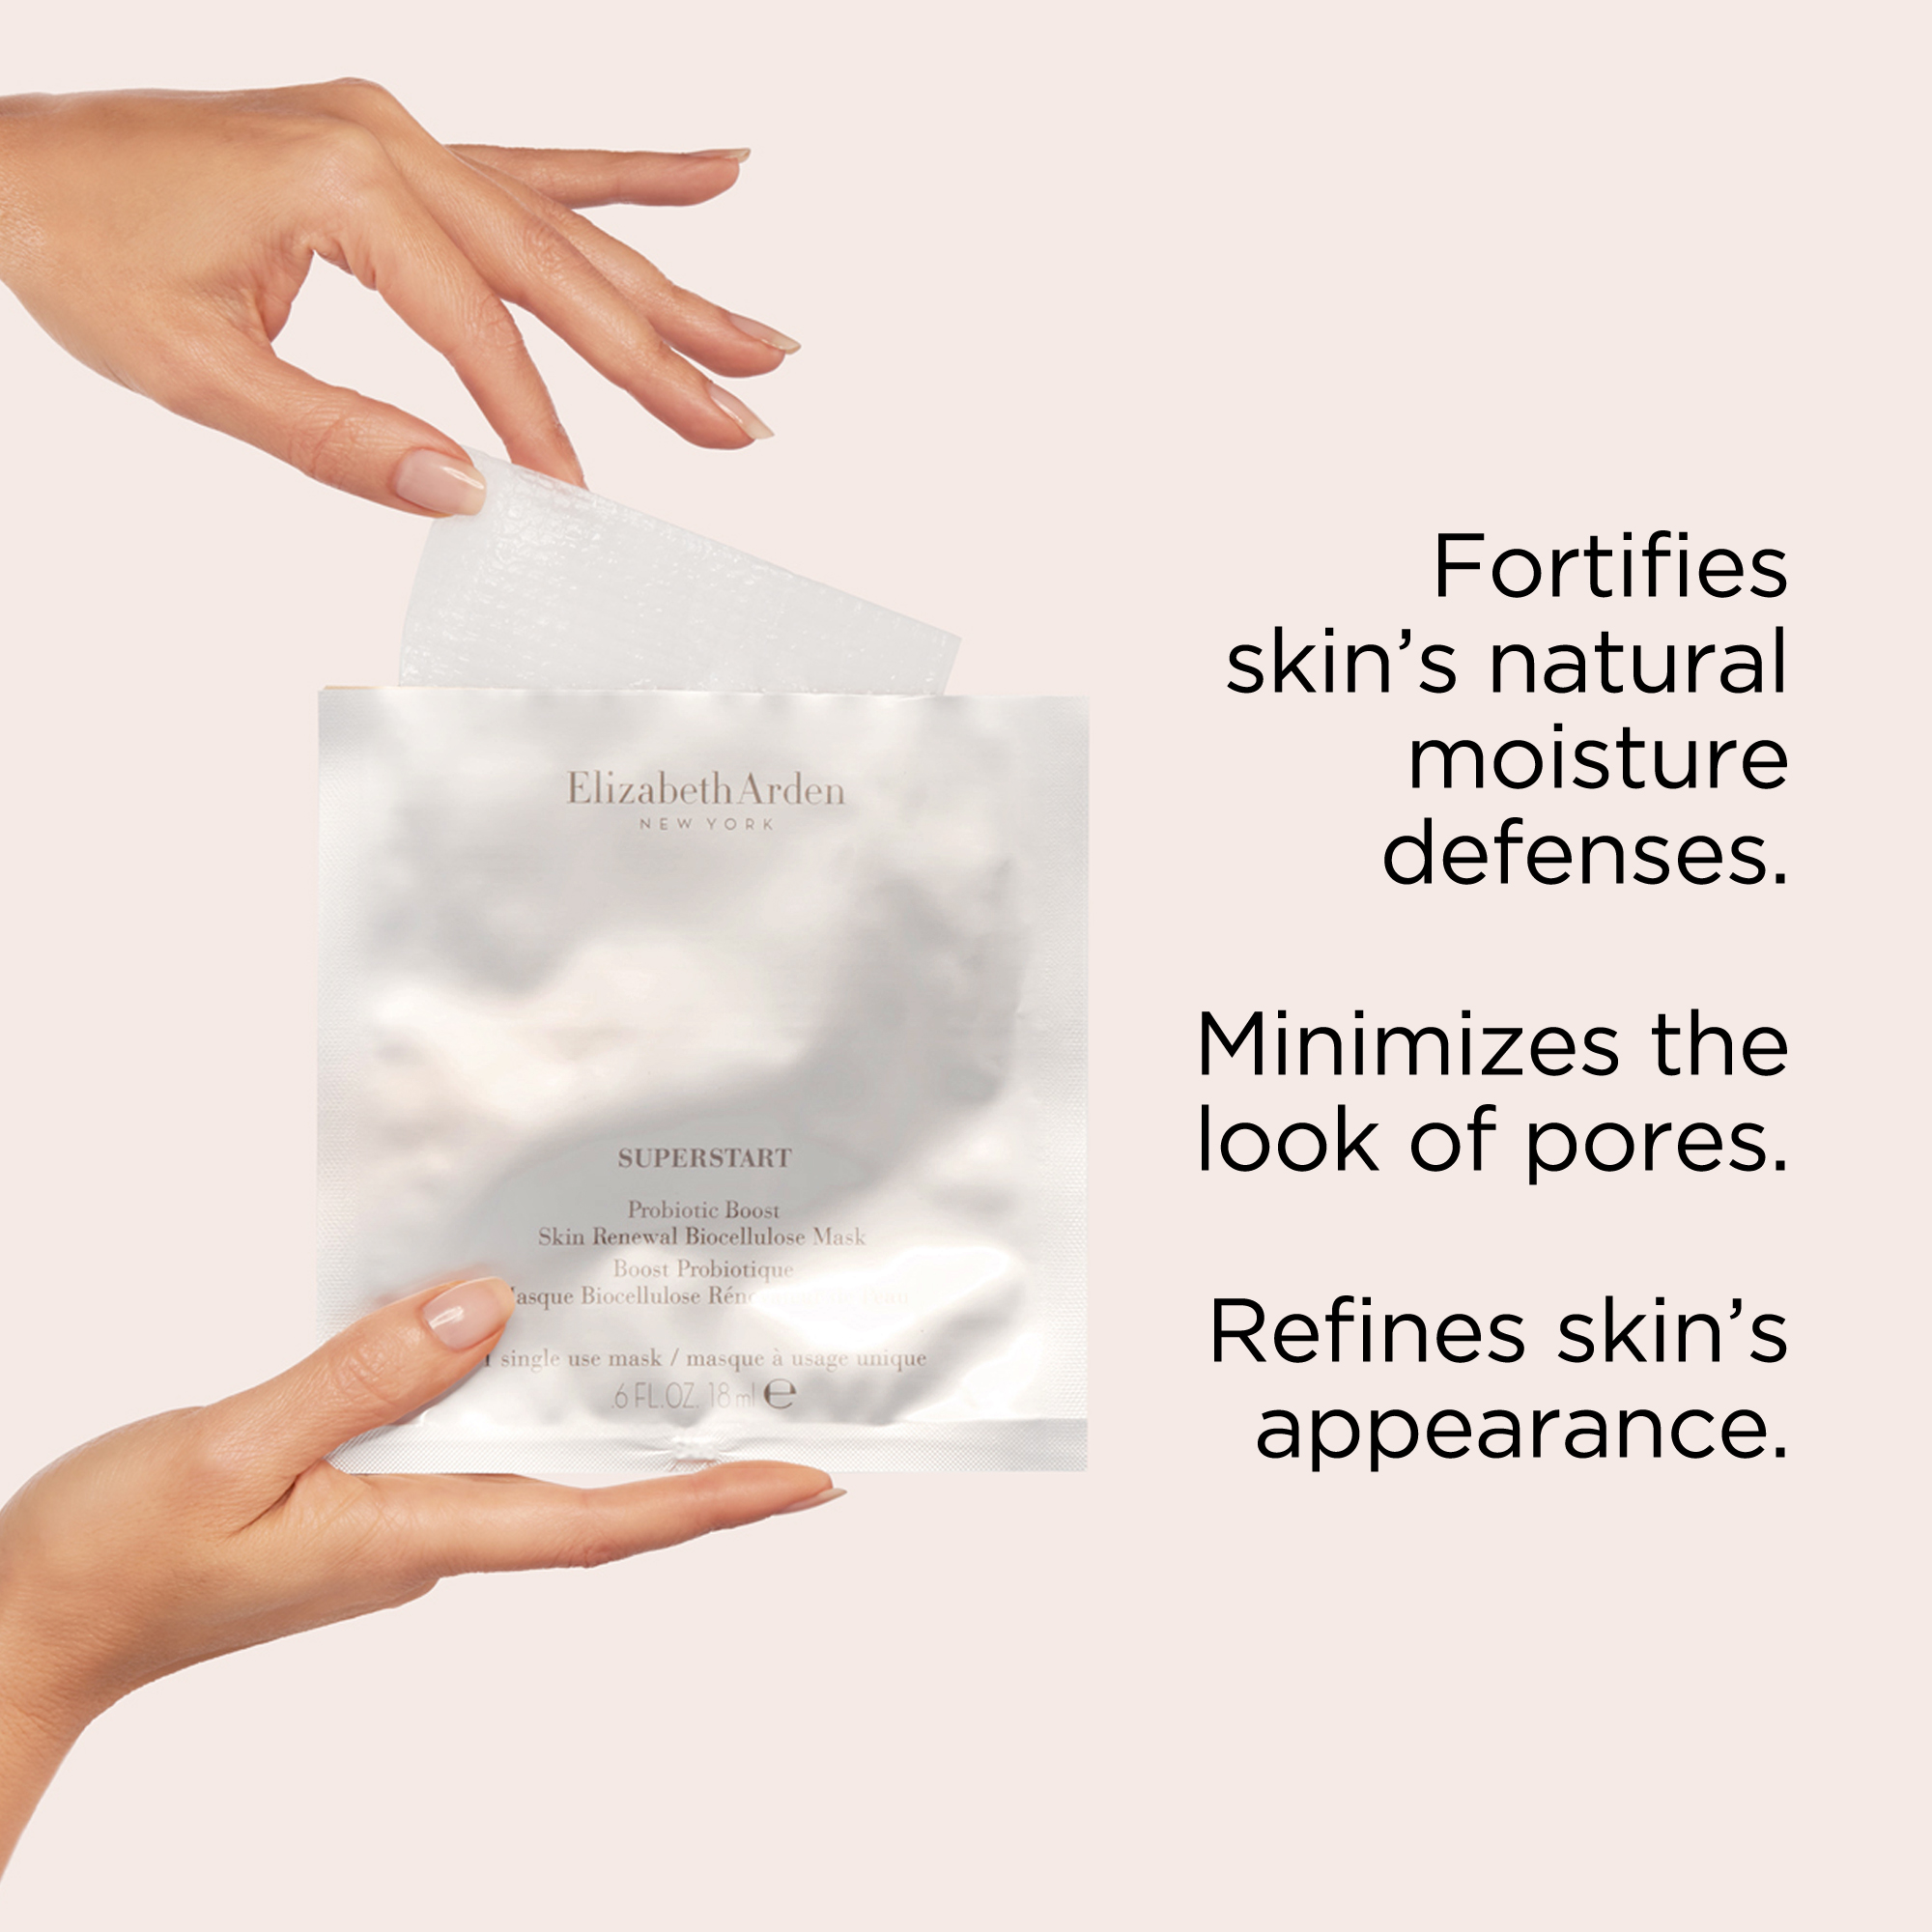 It fortifies skin's natural moisture defenses, minimizes pores and refines skin's appearance.